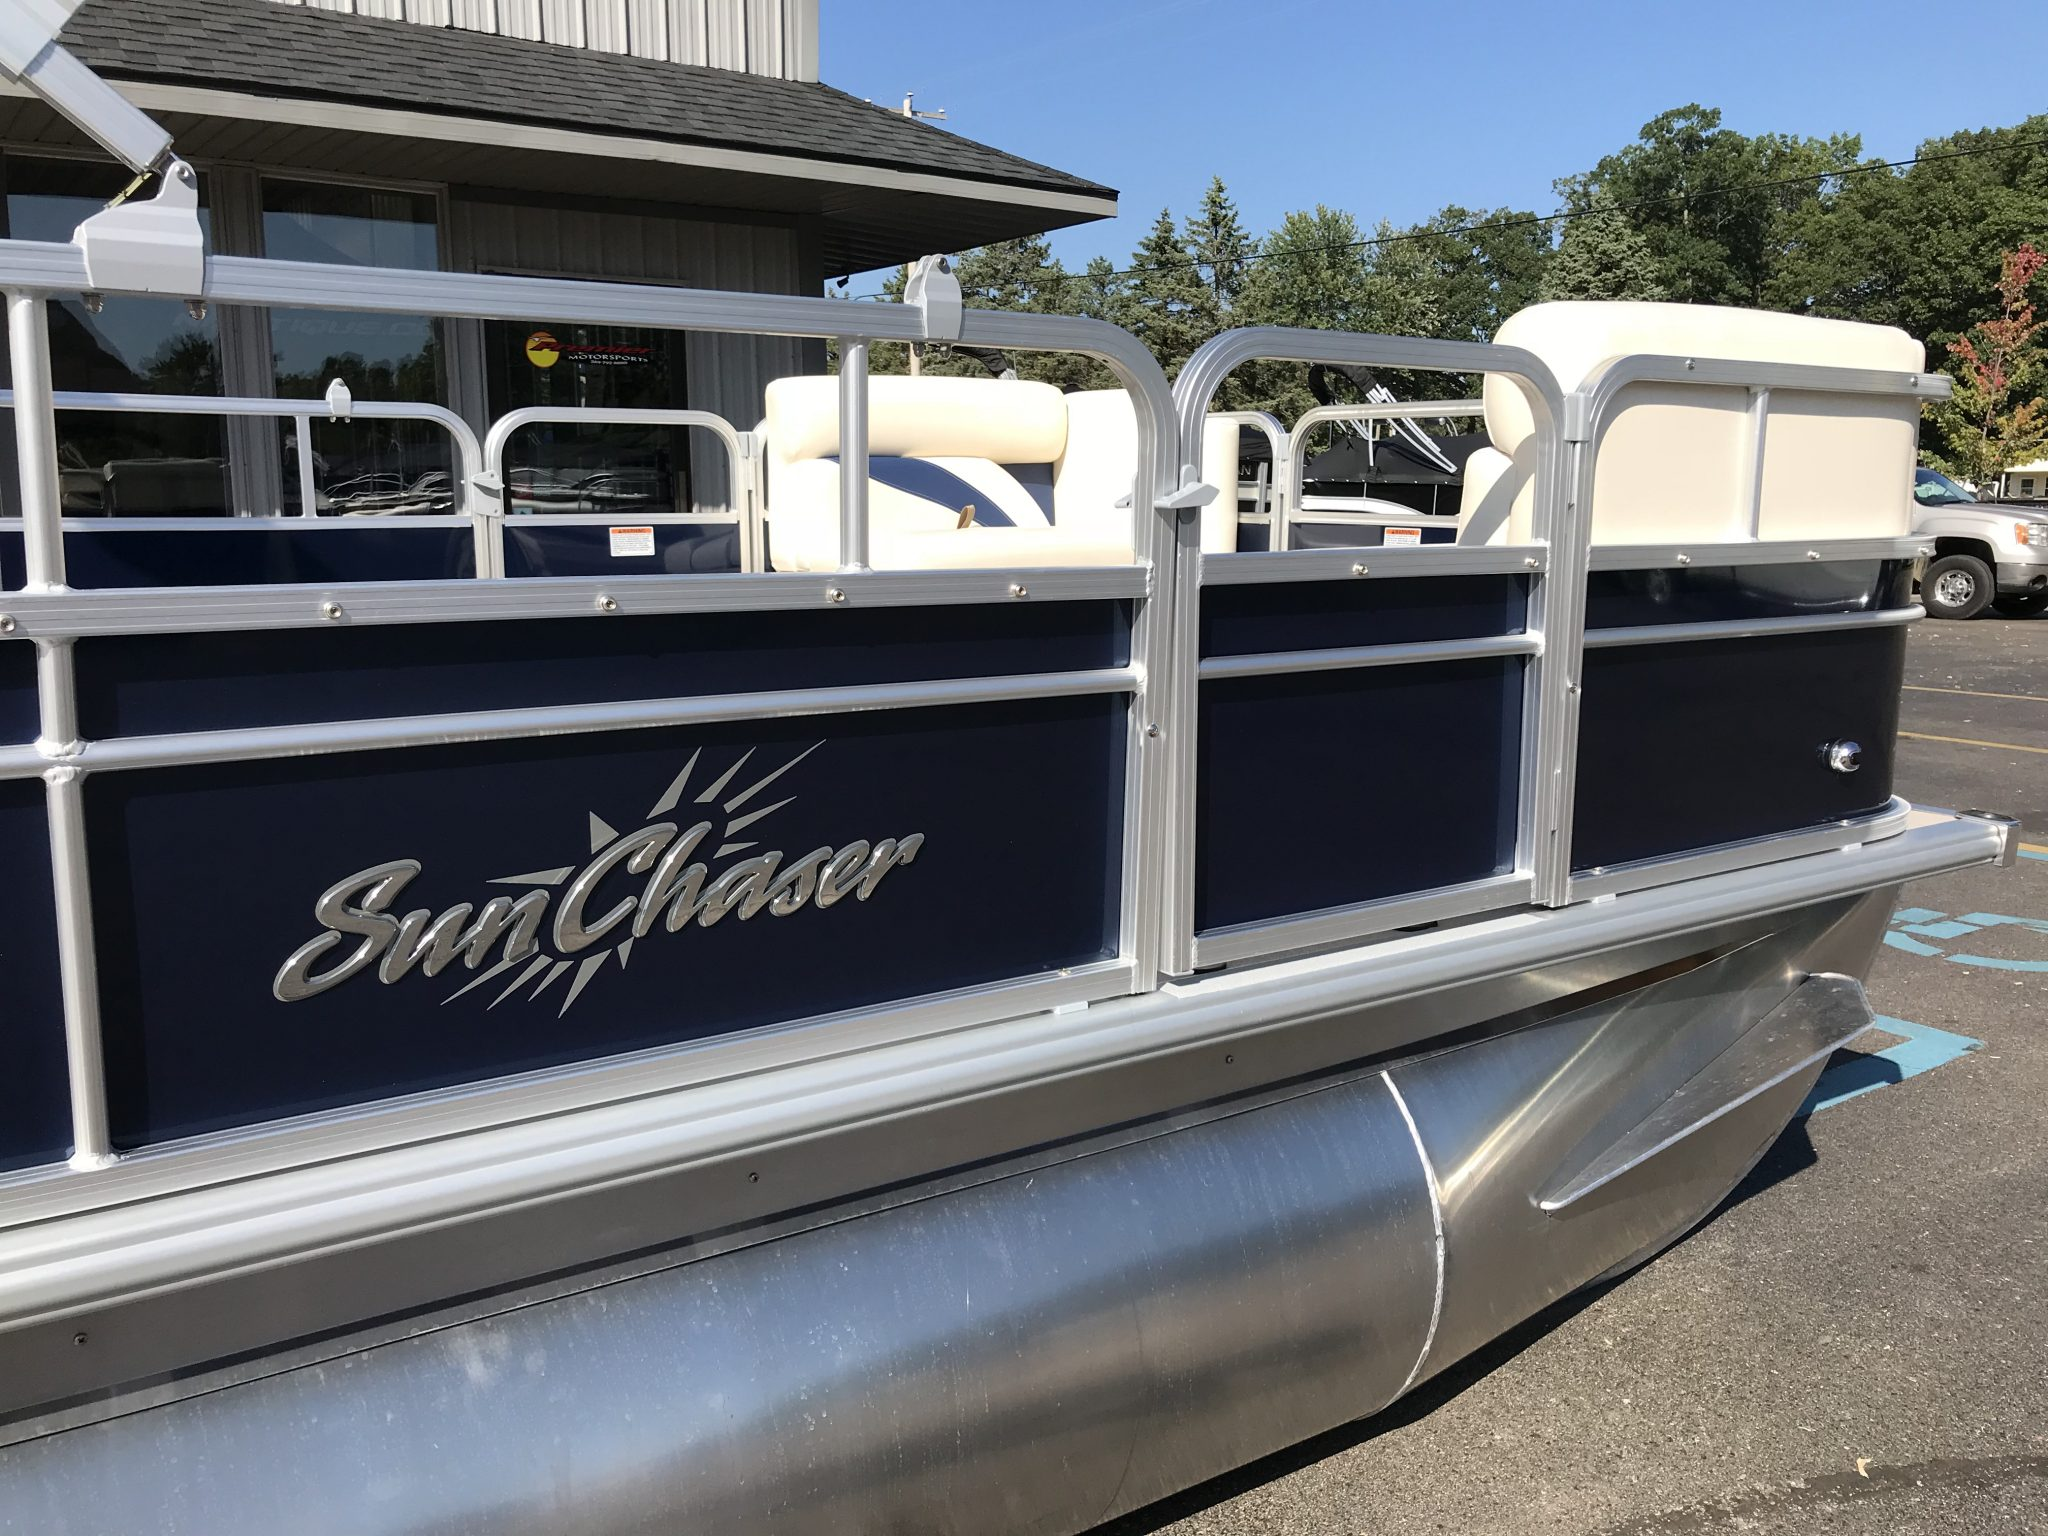 2019 SunChaser 816 Cruise Blue 5